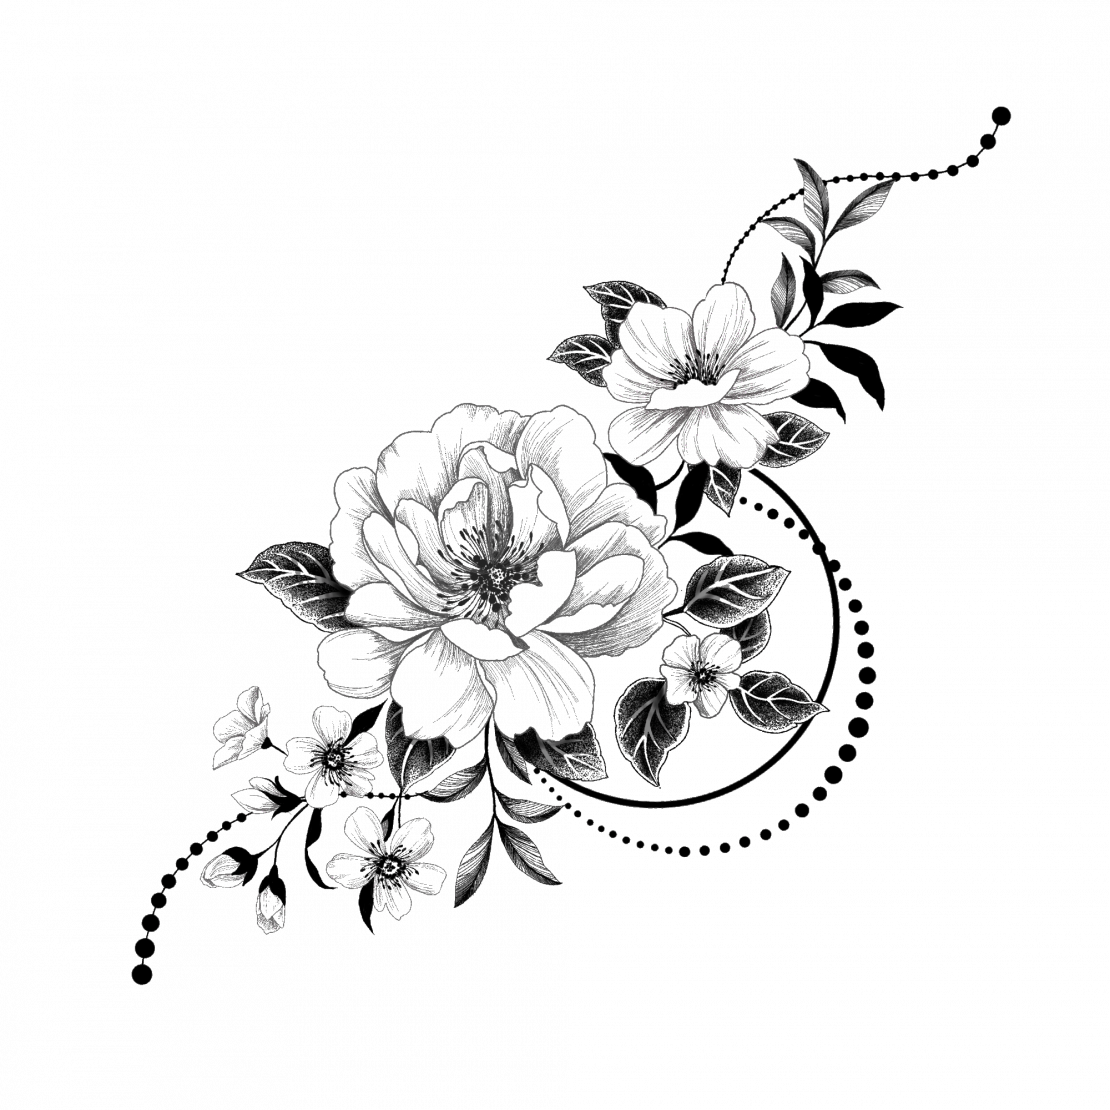 Temporary tattoo worldwide graphic flowers black and white graphic flowers mightylinksfo